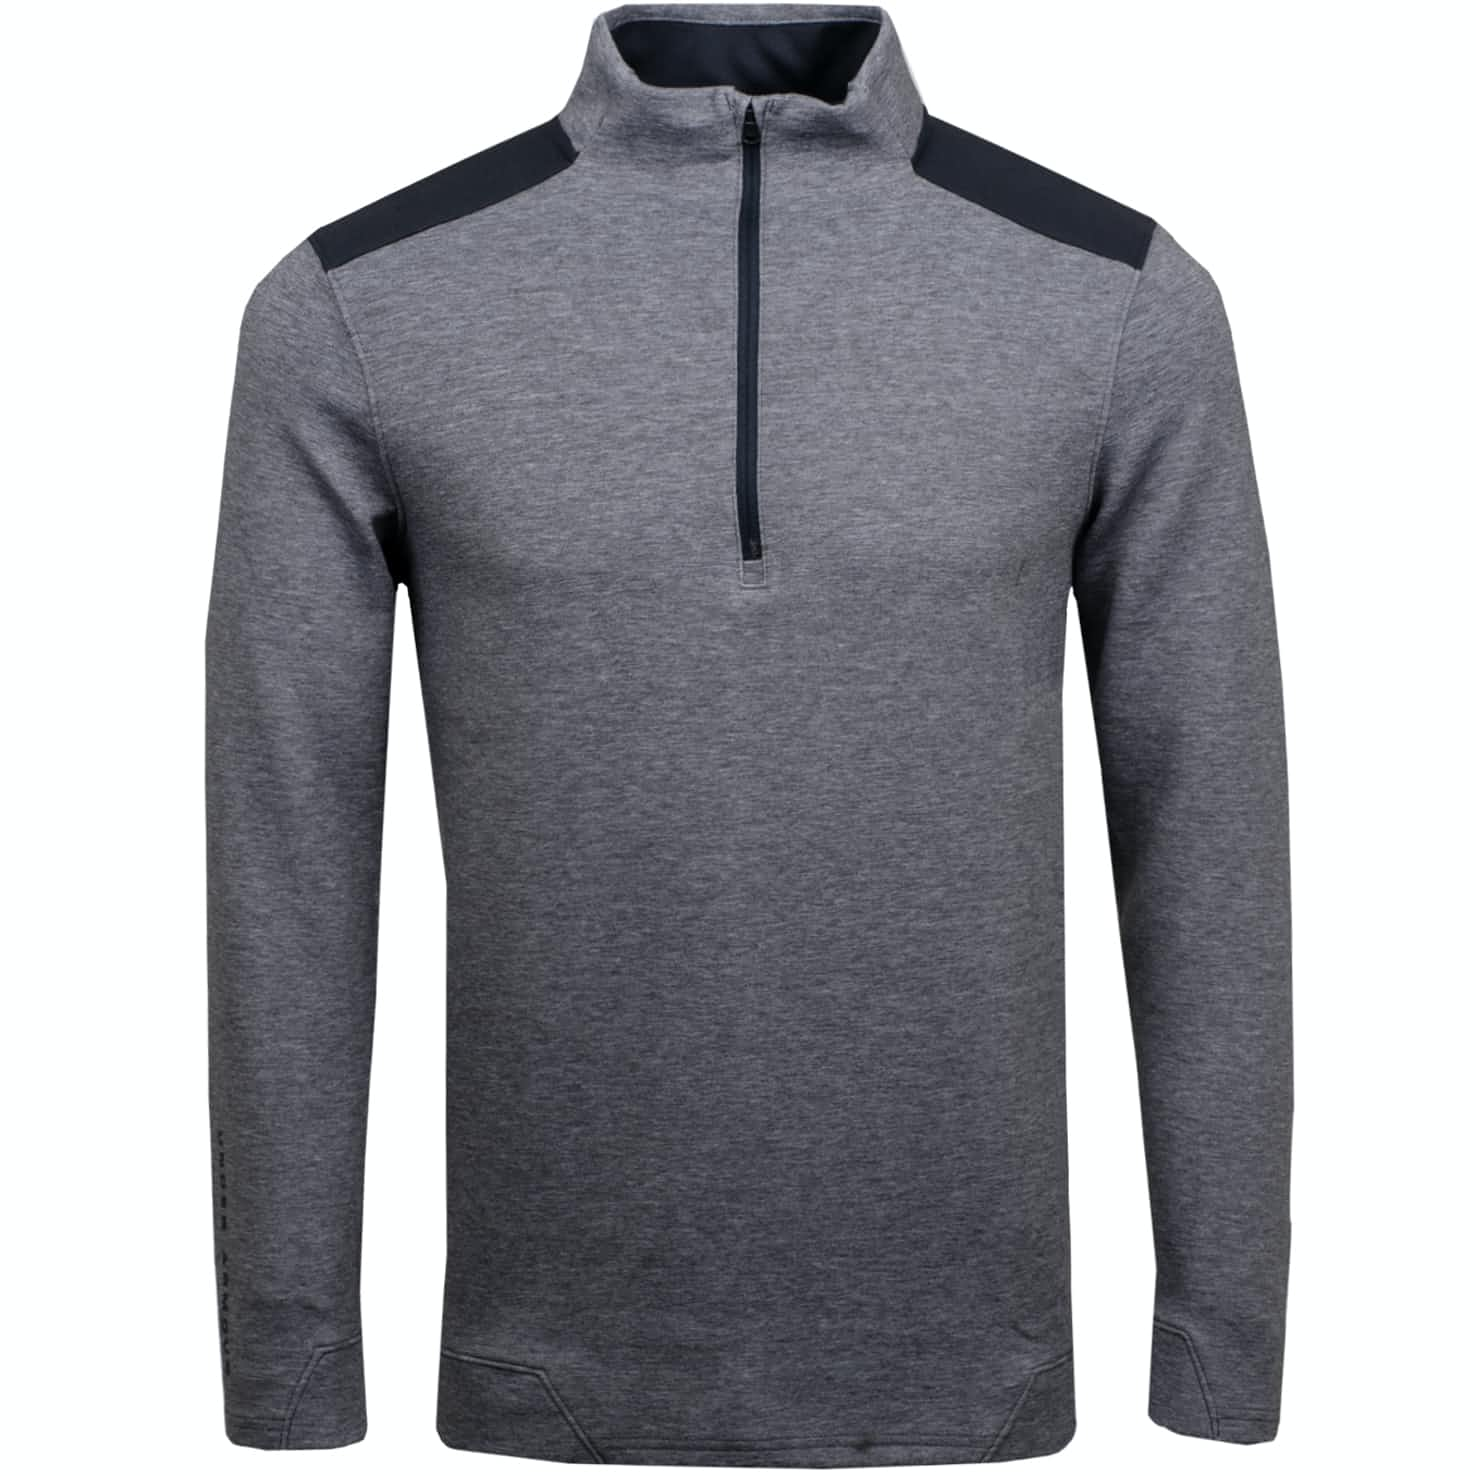 Storm Playoff HZ Charcoal Fade Heather - AW18